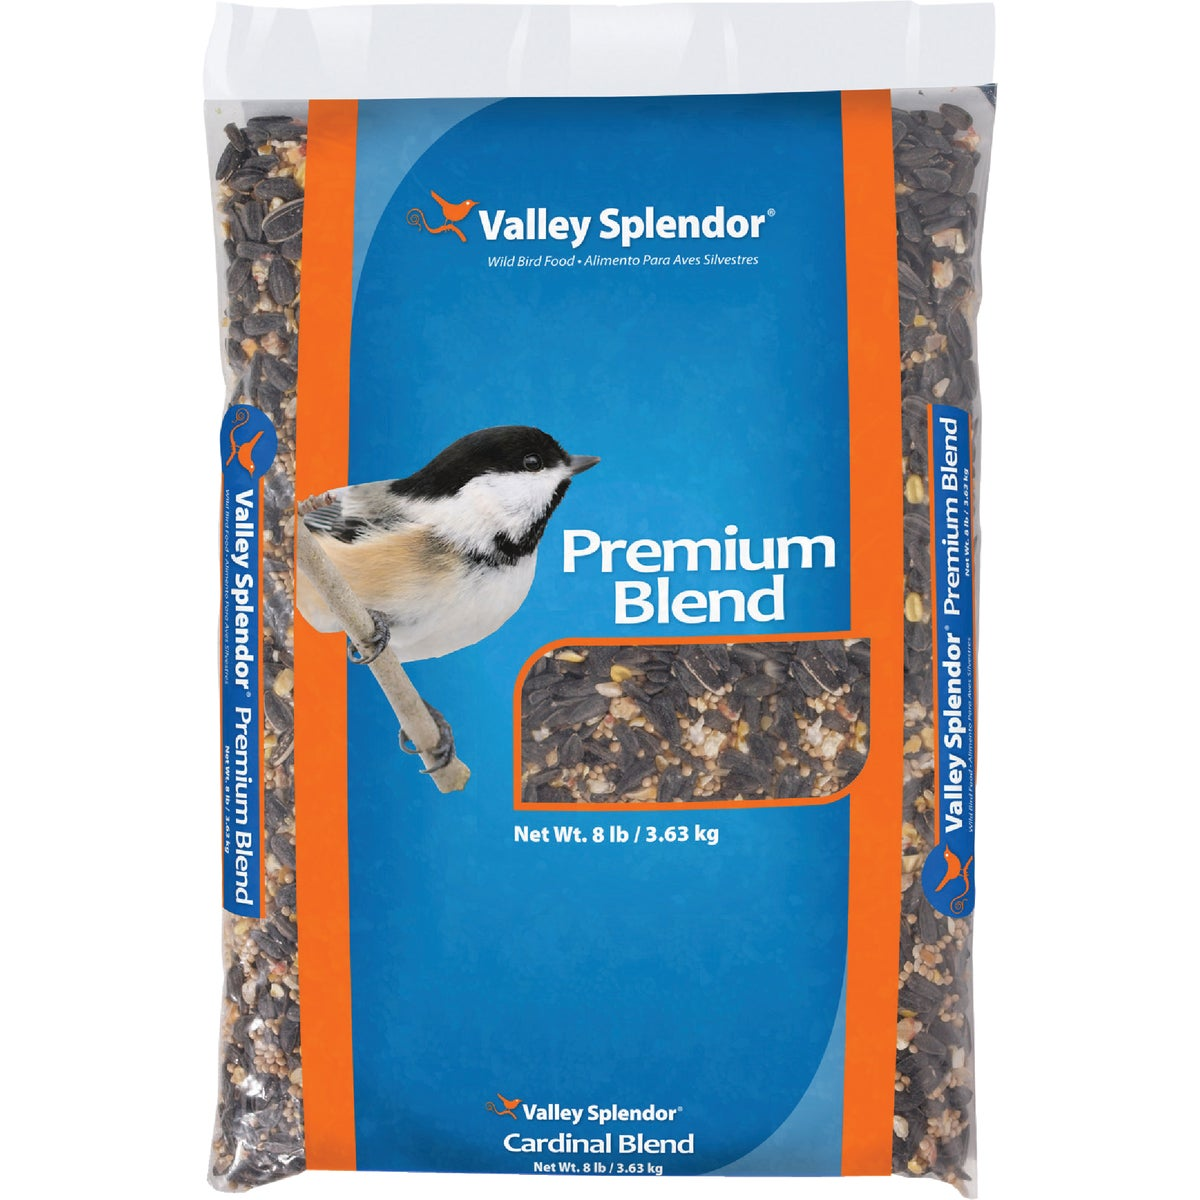 8LB PRM BLEND BIRD SEED - 386 by Red River Commod